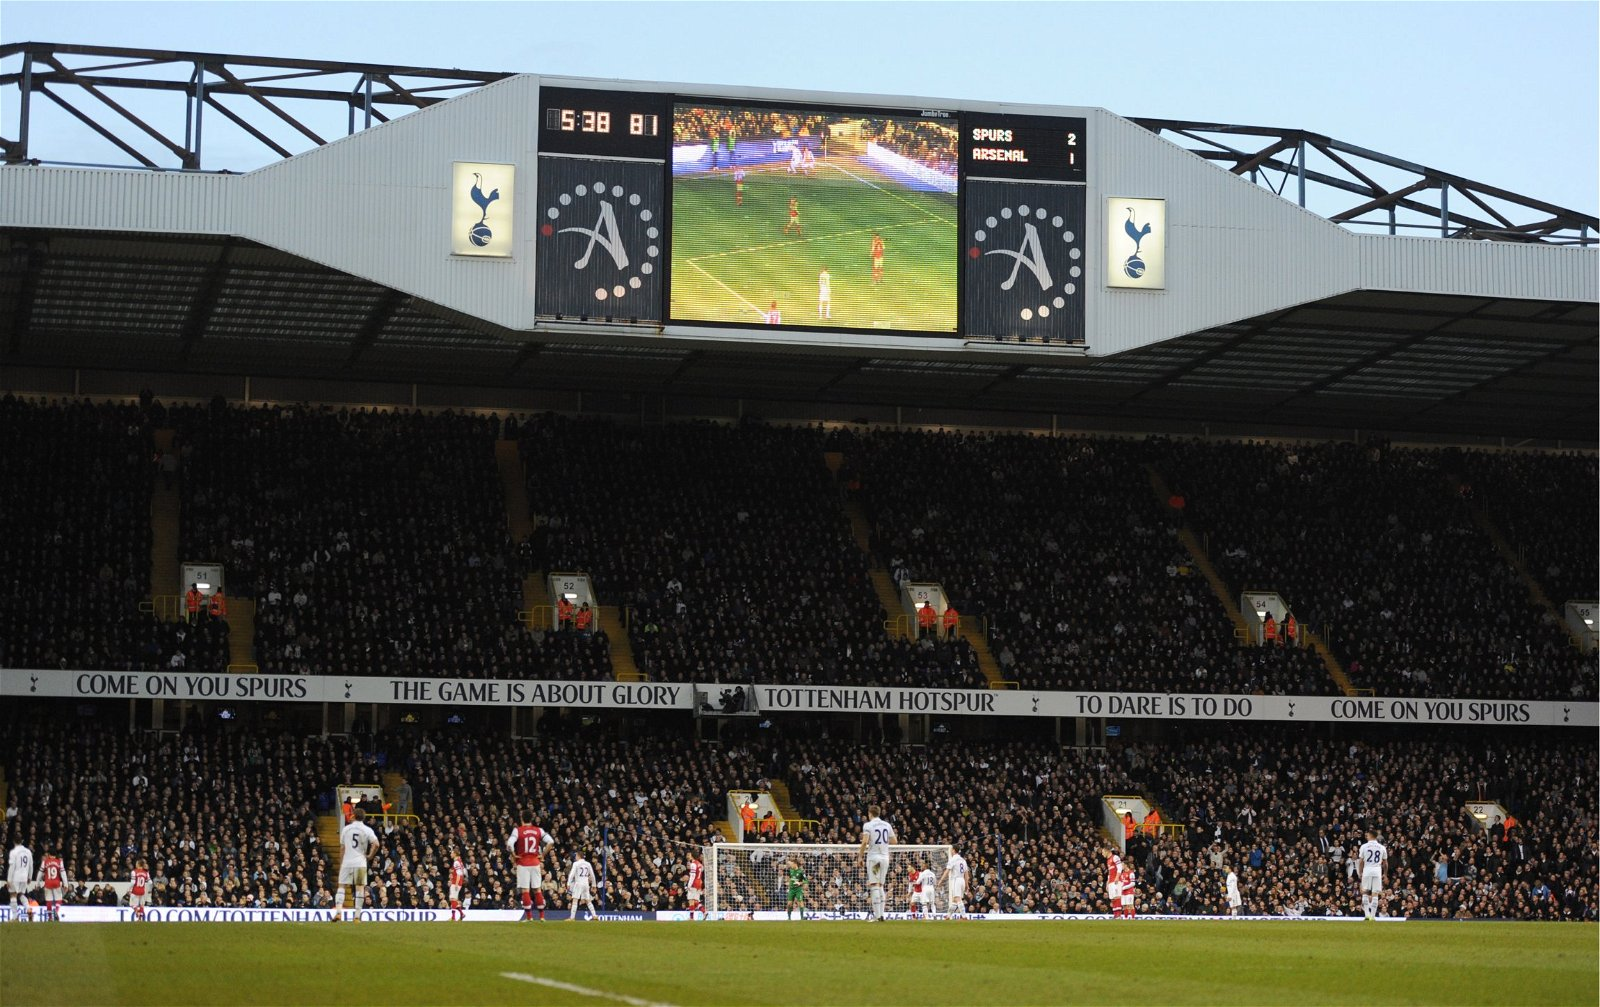 White Hart Lane shows Tottenham leading Arsenal 2-1 in March 2013